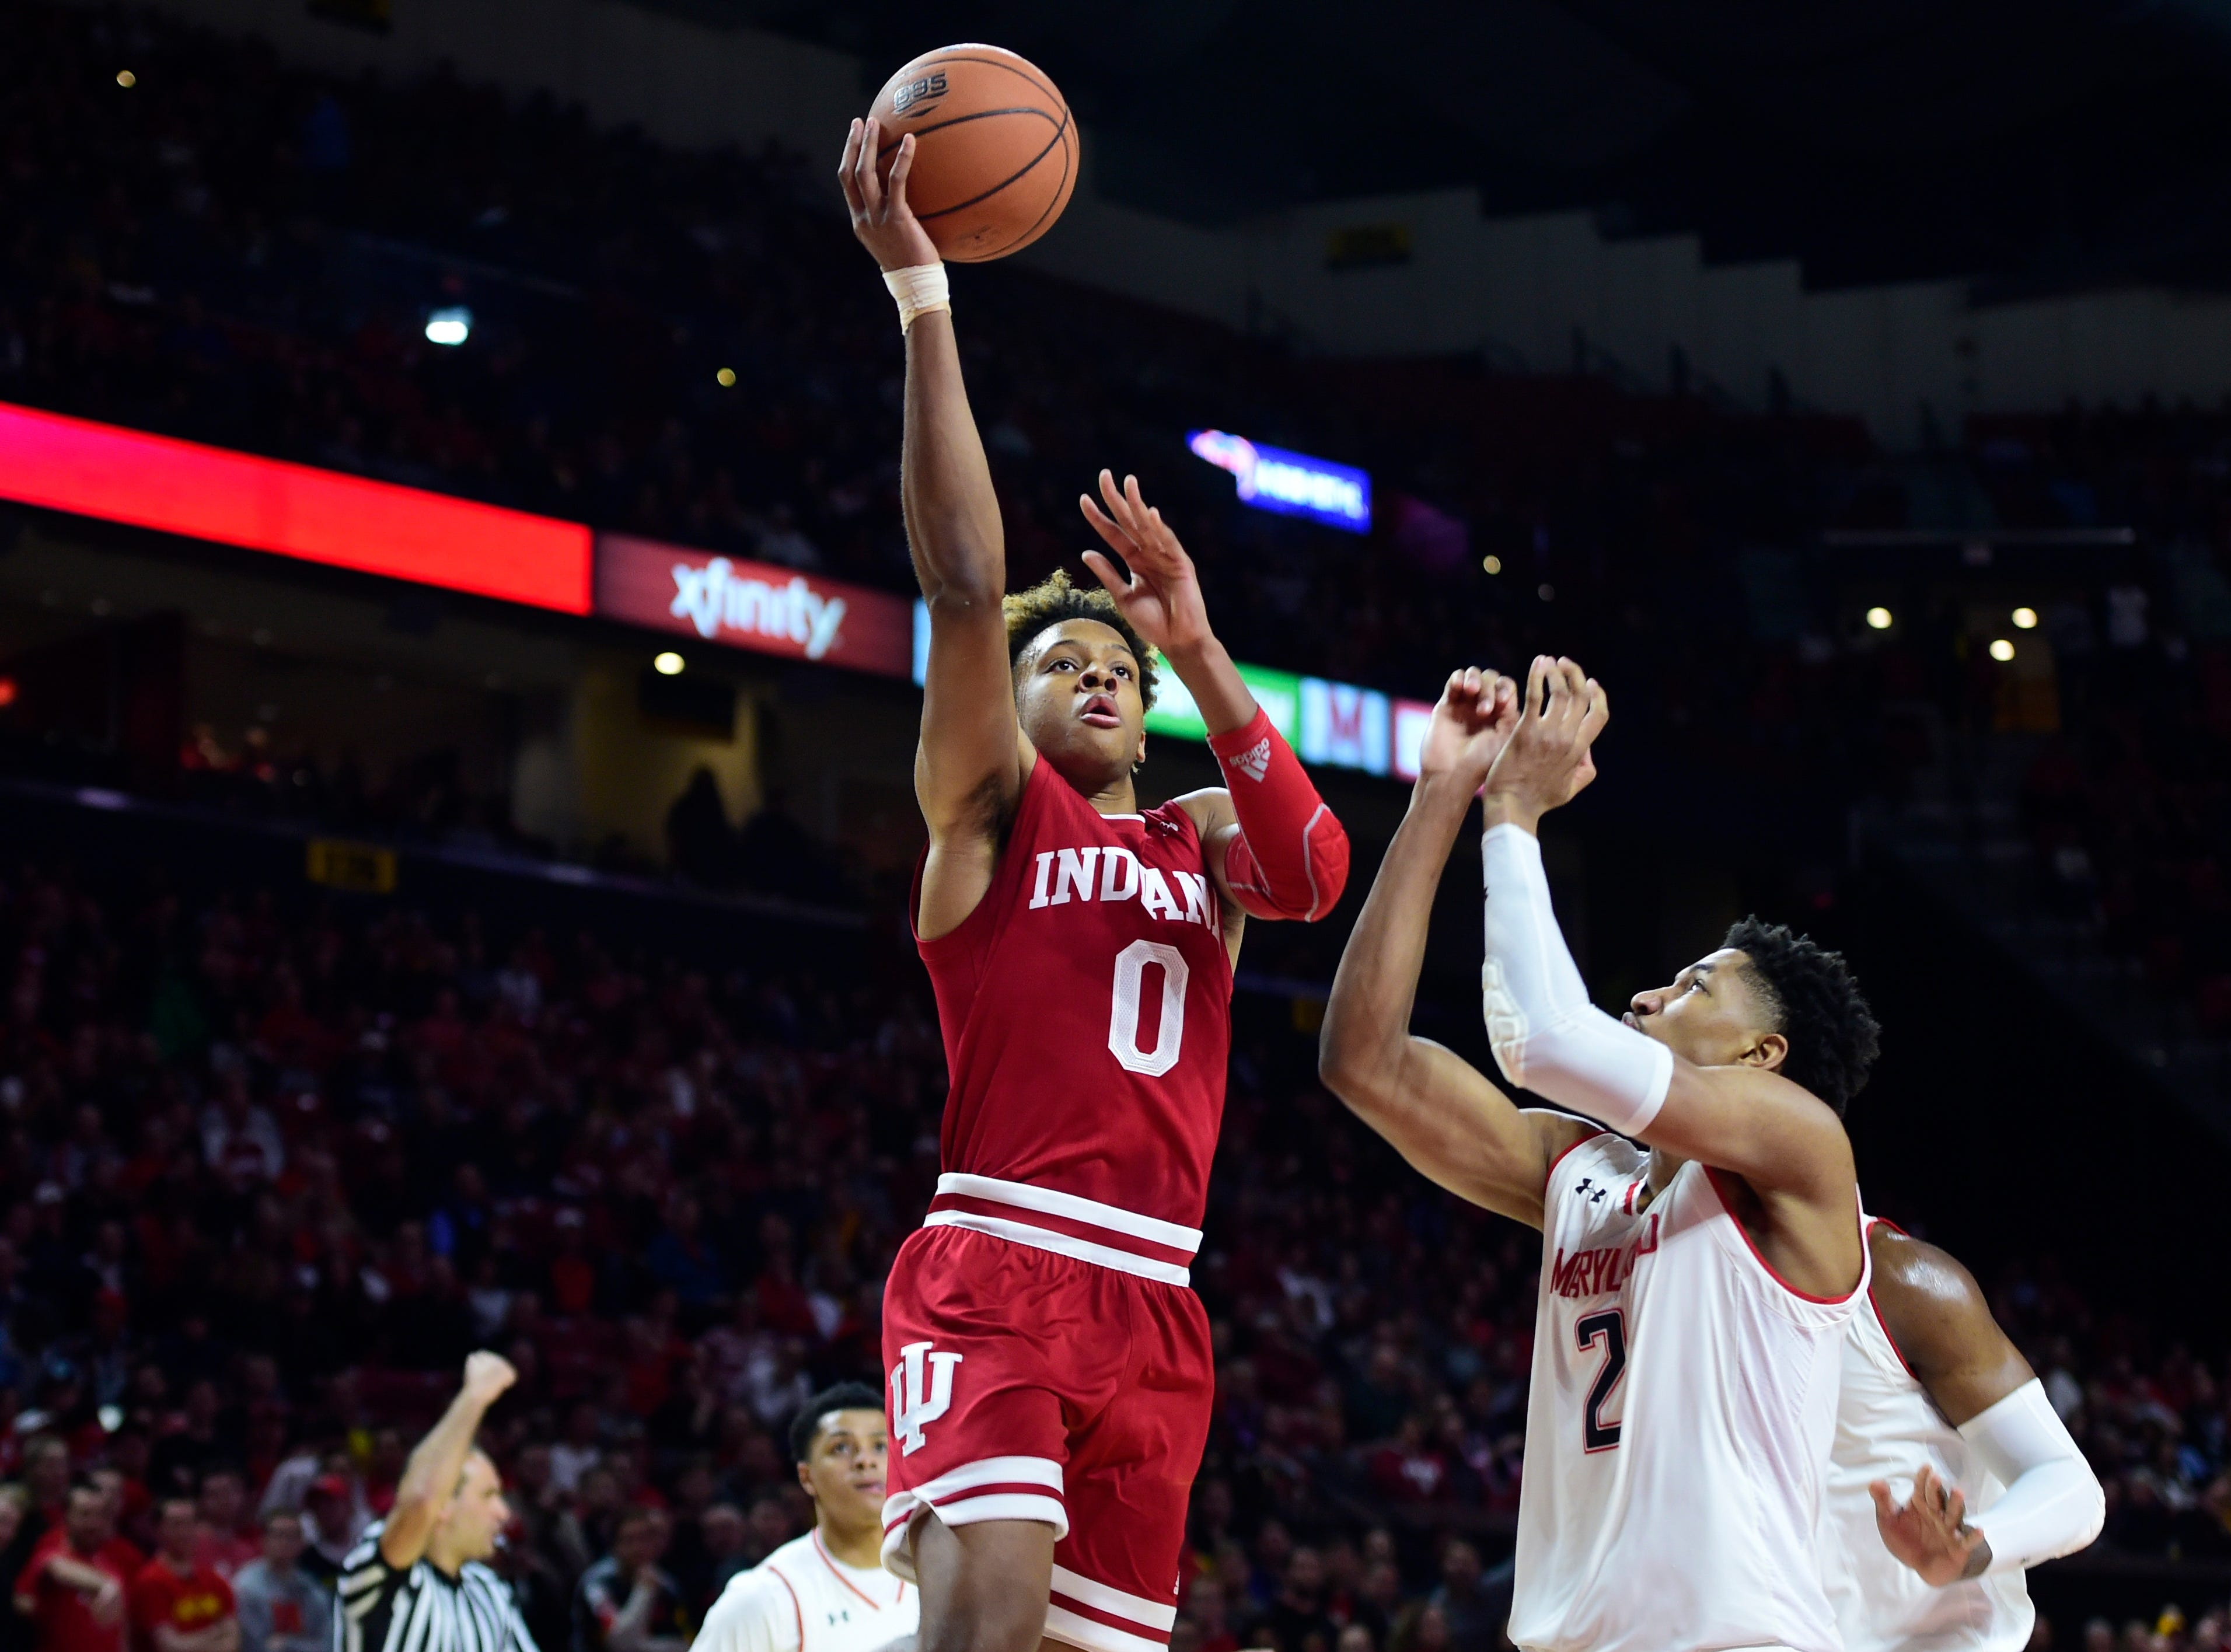 Jan 11, 2019; College Park, MD, USA;  Indiana Hoosiers guard Romeo Langford (0) shoots as Maryland Terrapins guard Aaron Wiggins (2) defends during the first half at XFINITY Center. Mandatory Credit: Tommy Gilligan-USA TODAY Sports